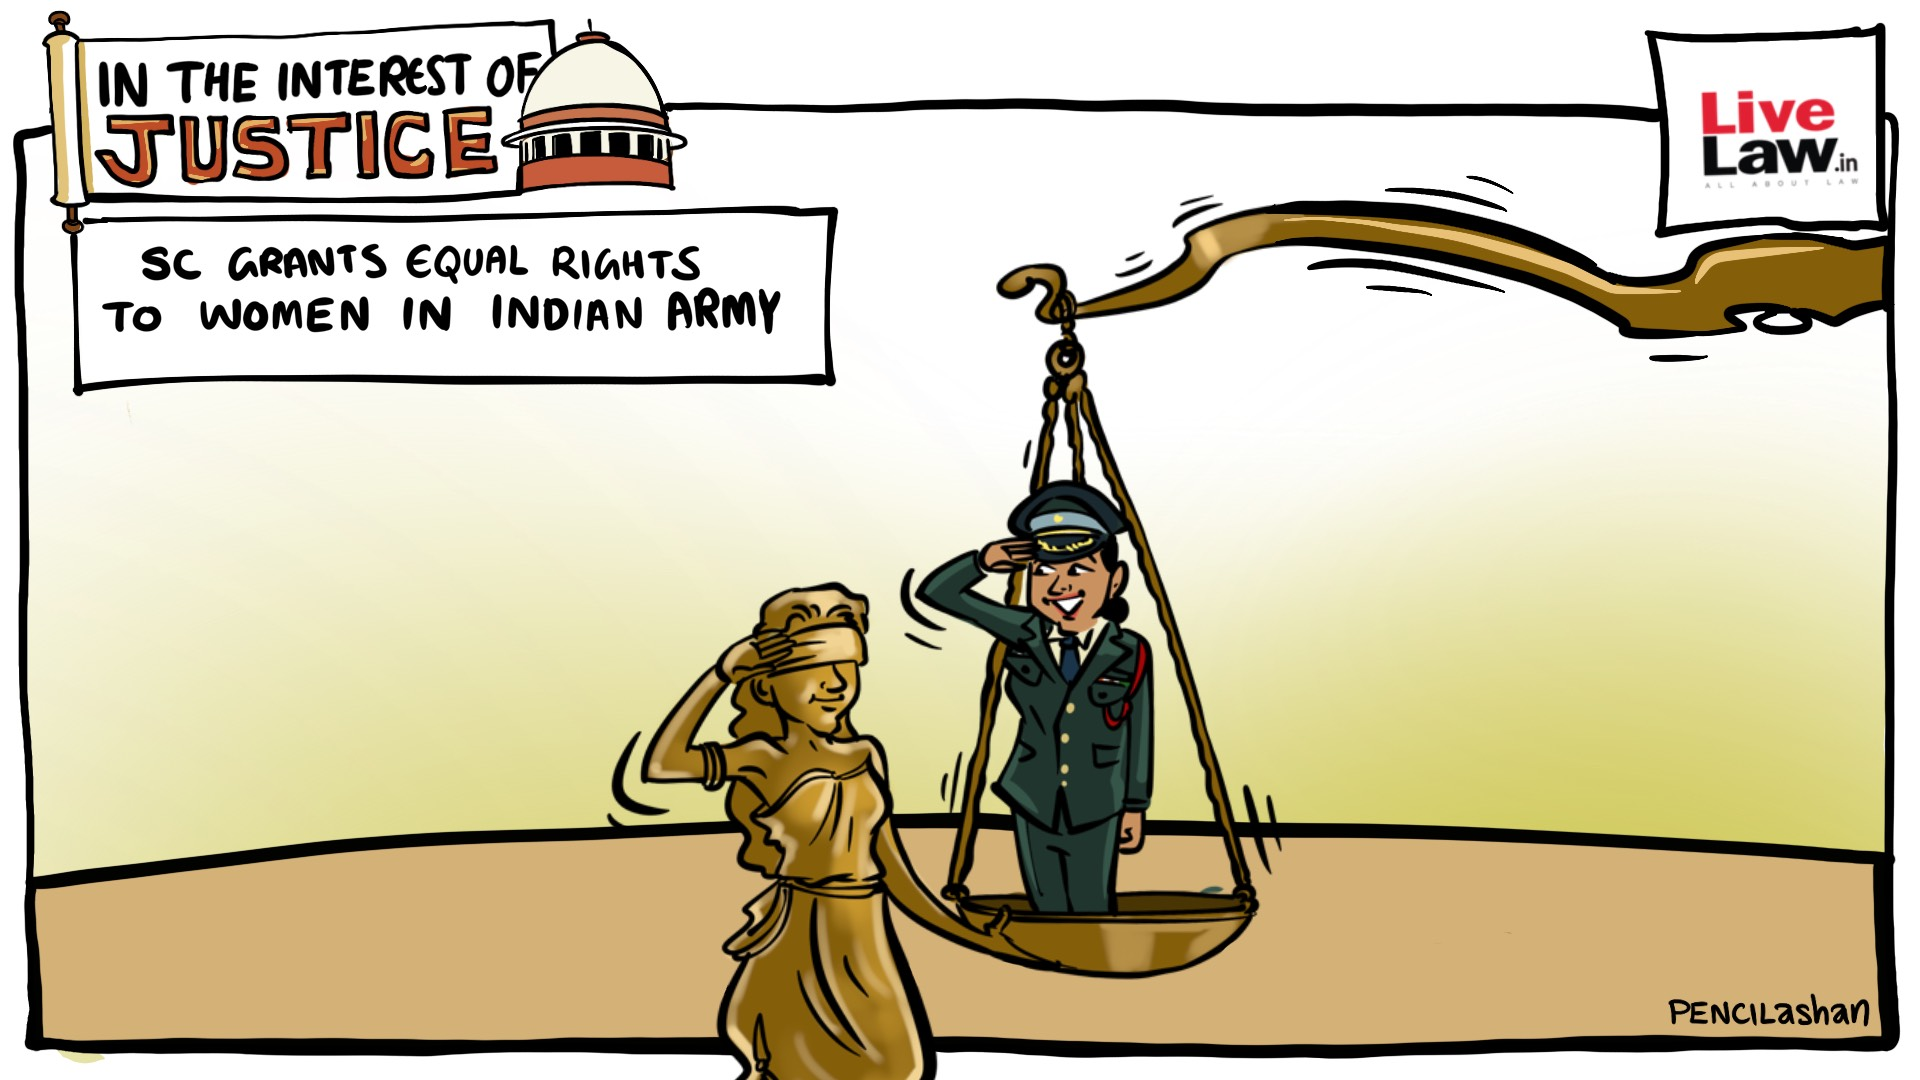 SC Grants equal rights to women in Indian army